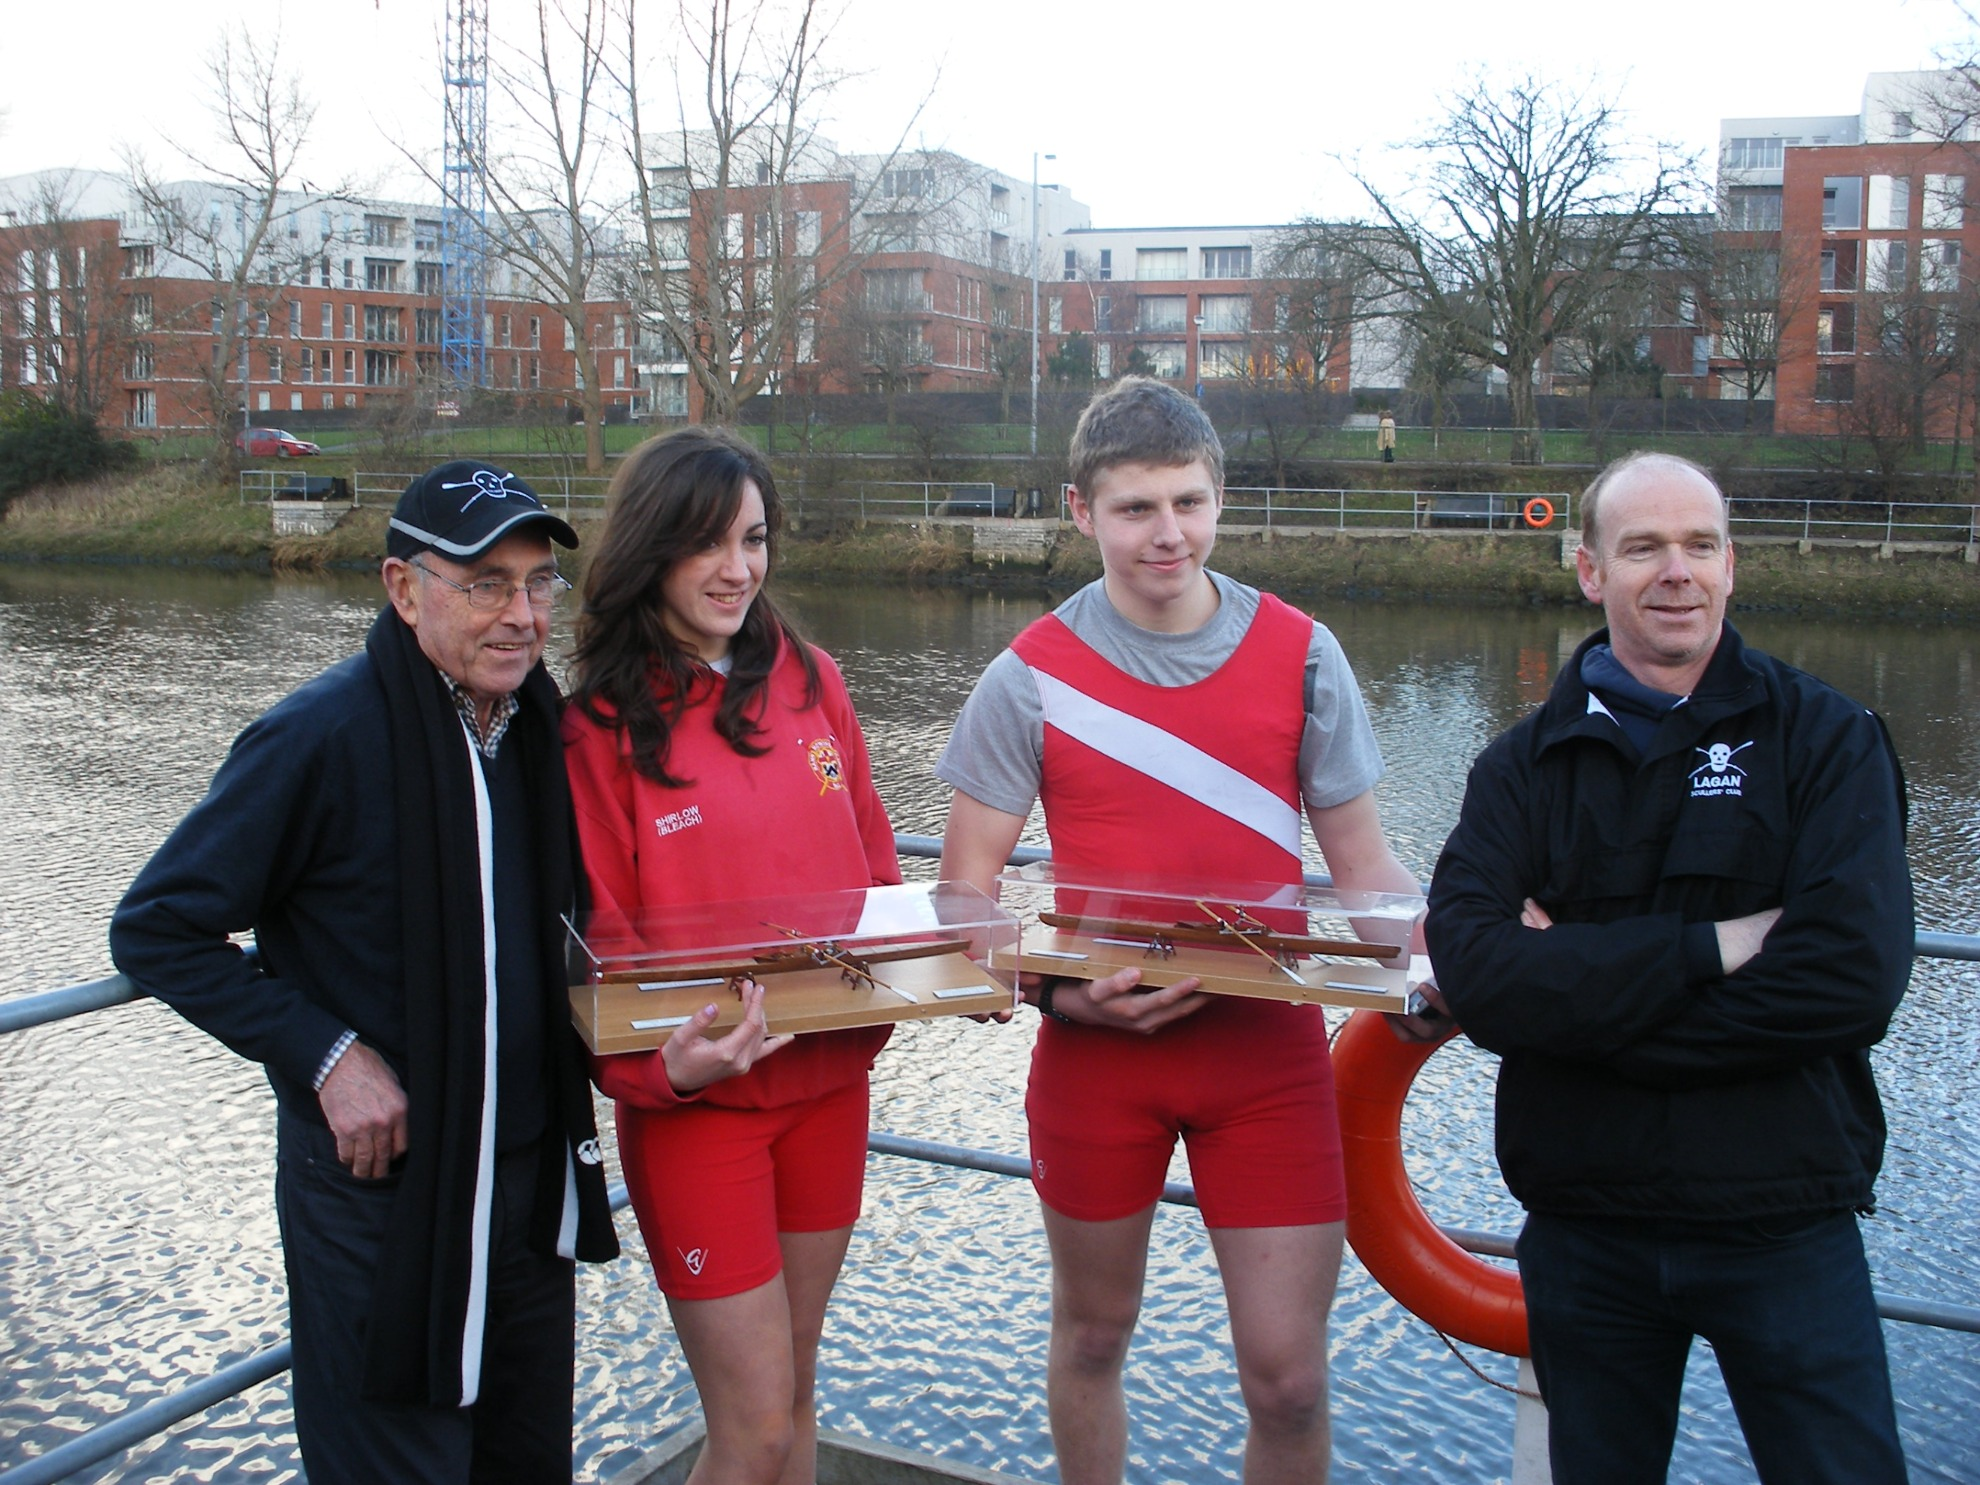 fastest-scullers-at-lagan-scullers-2011-with-amazing-trophies